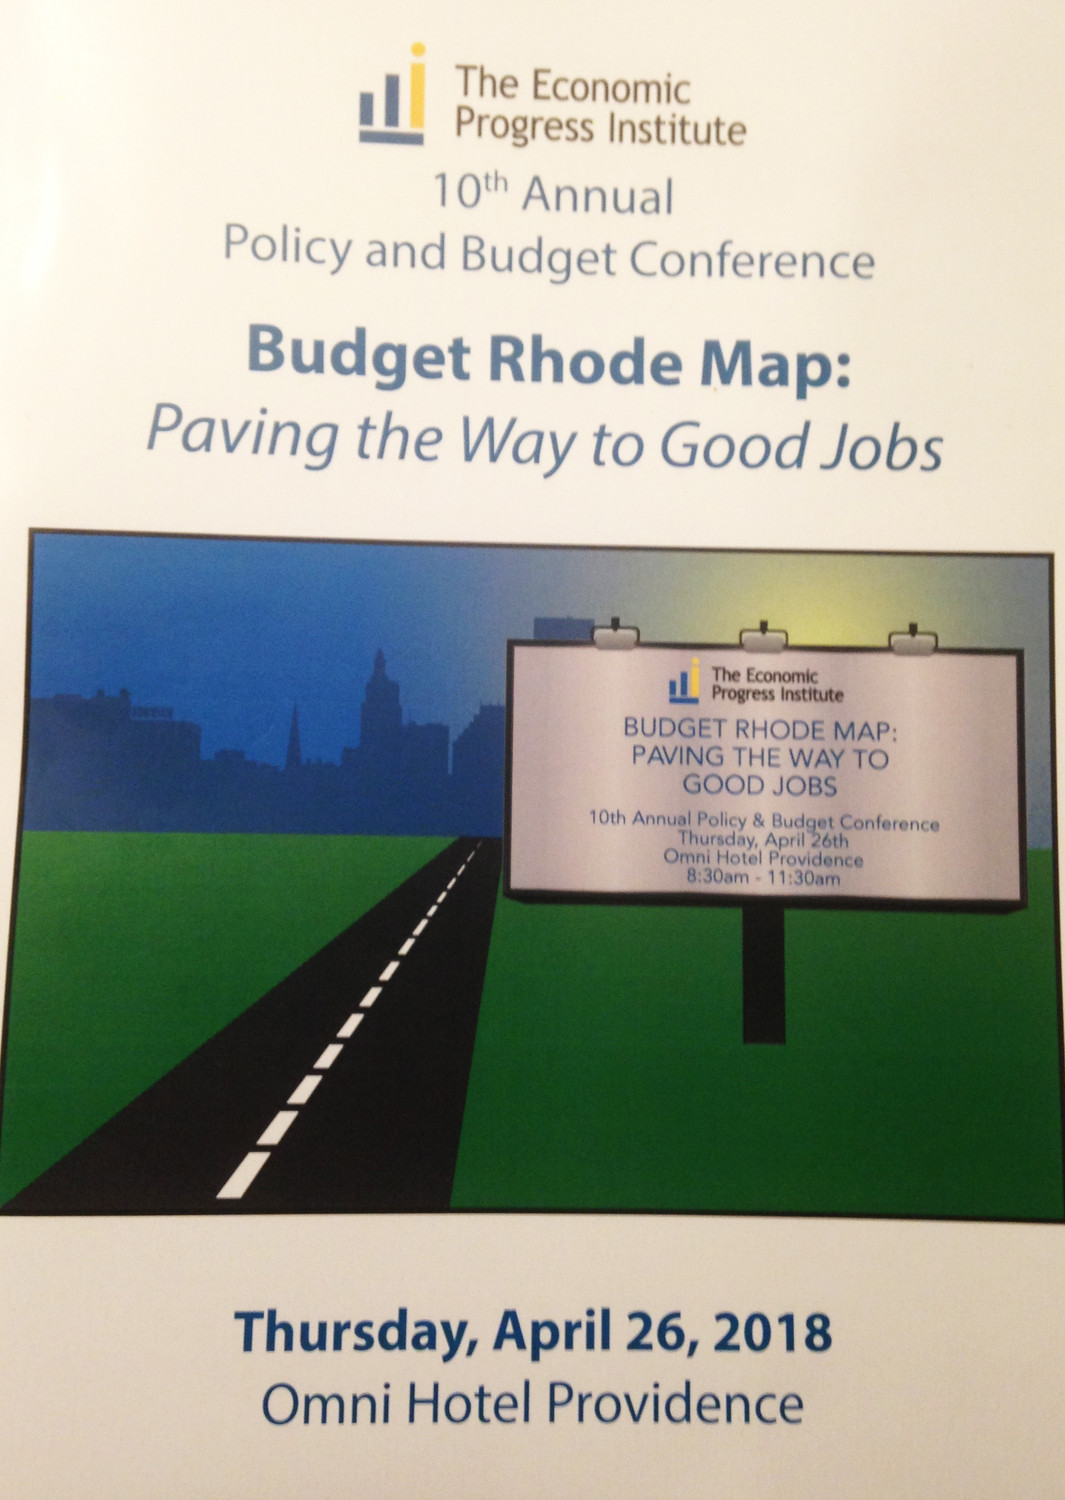 The program cover for the 10th annual policy and budget conference hosted by the Economic Progress Institute.